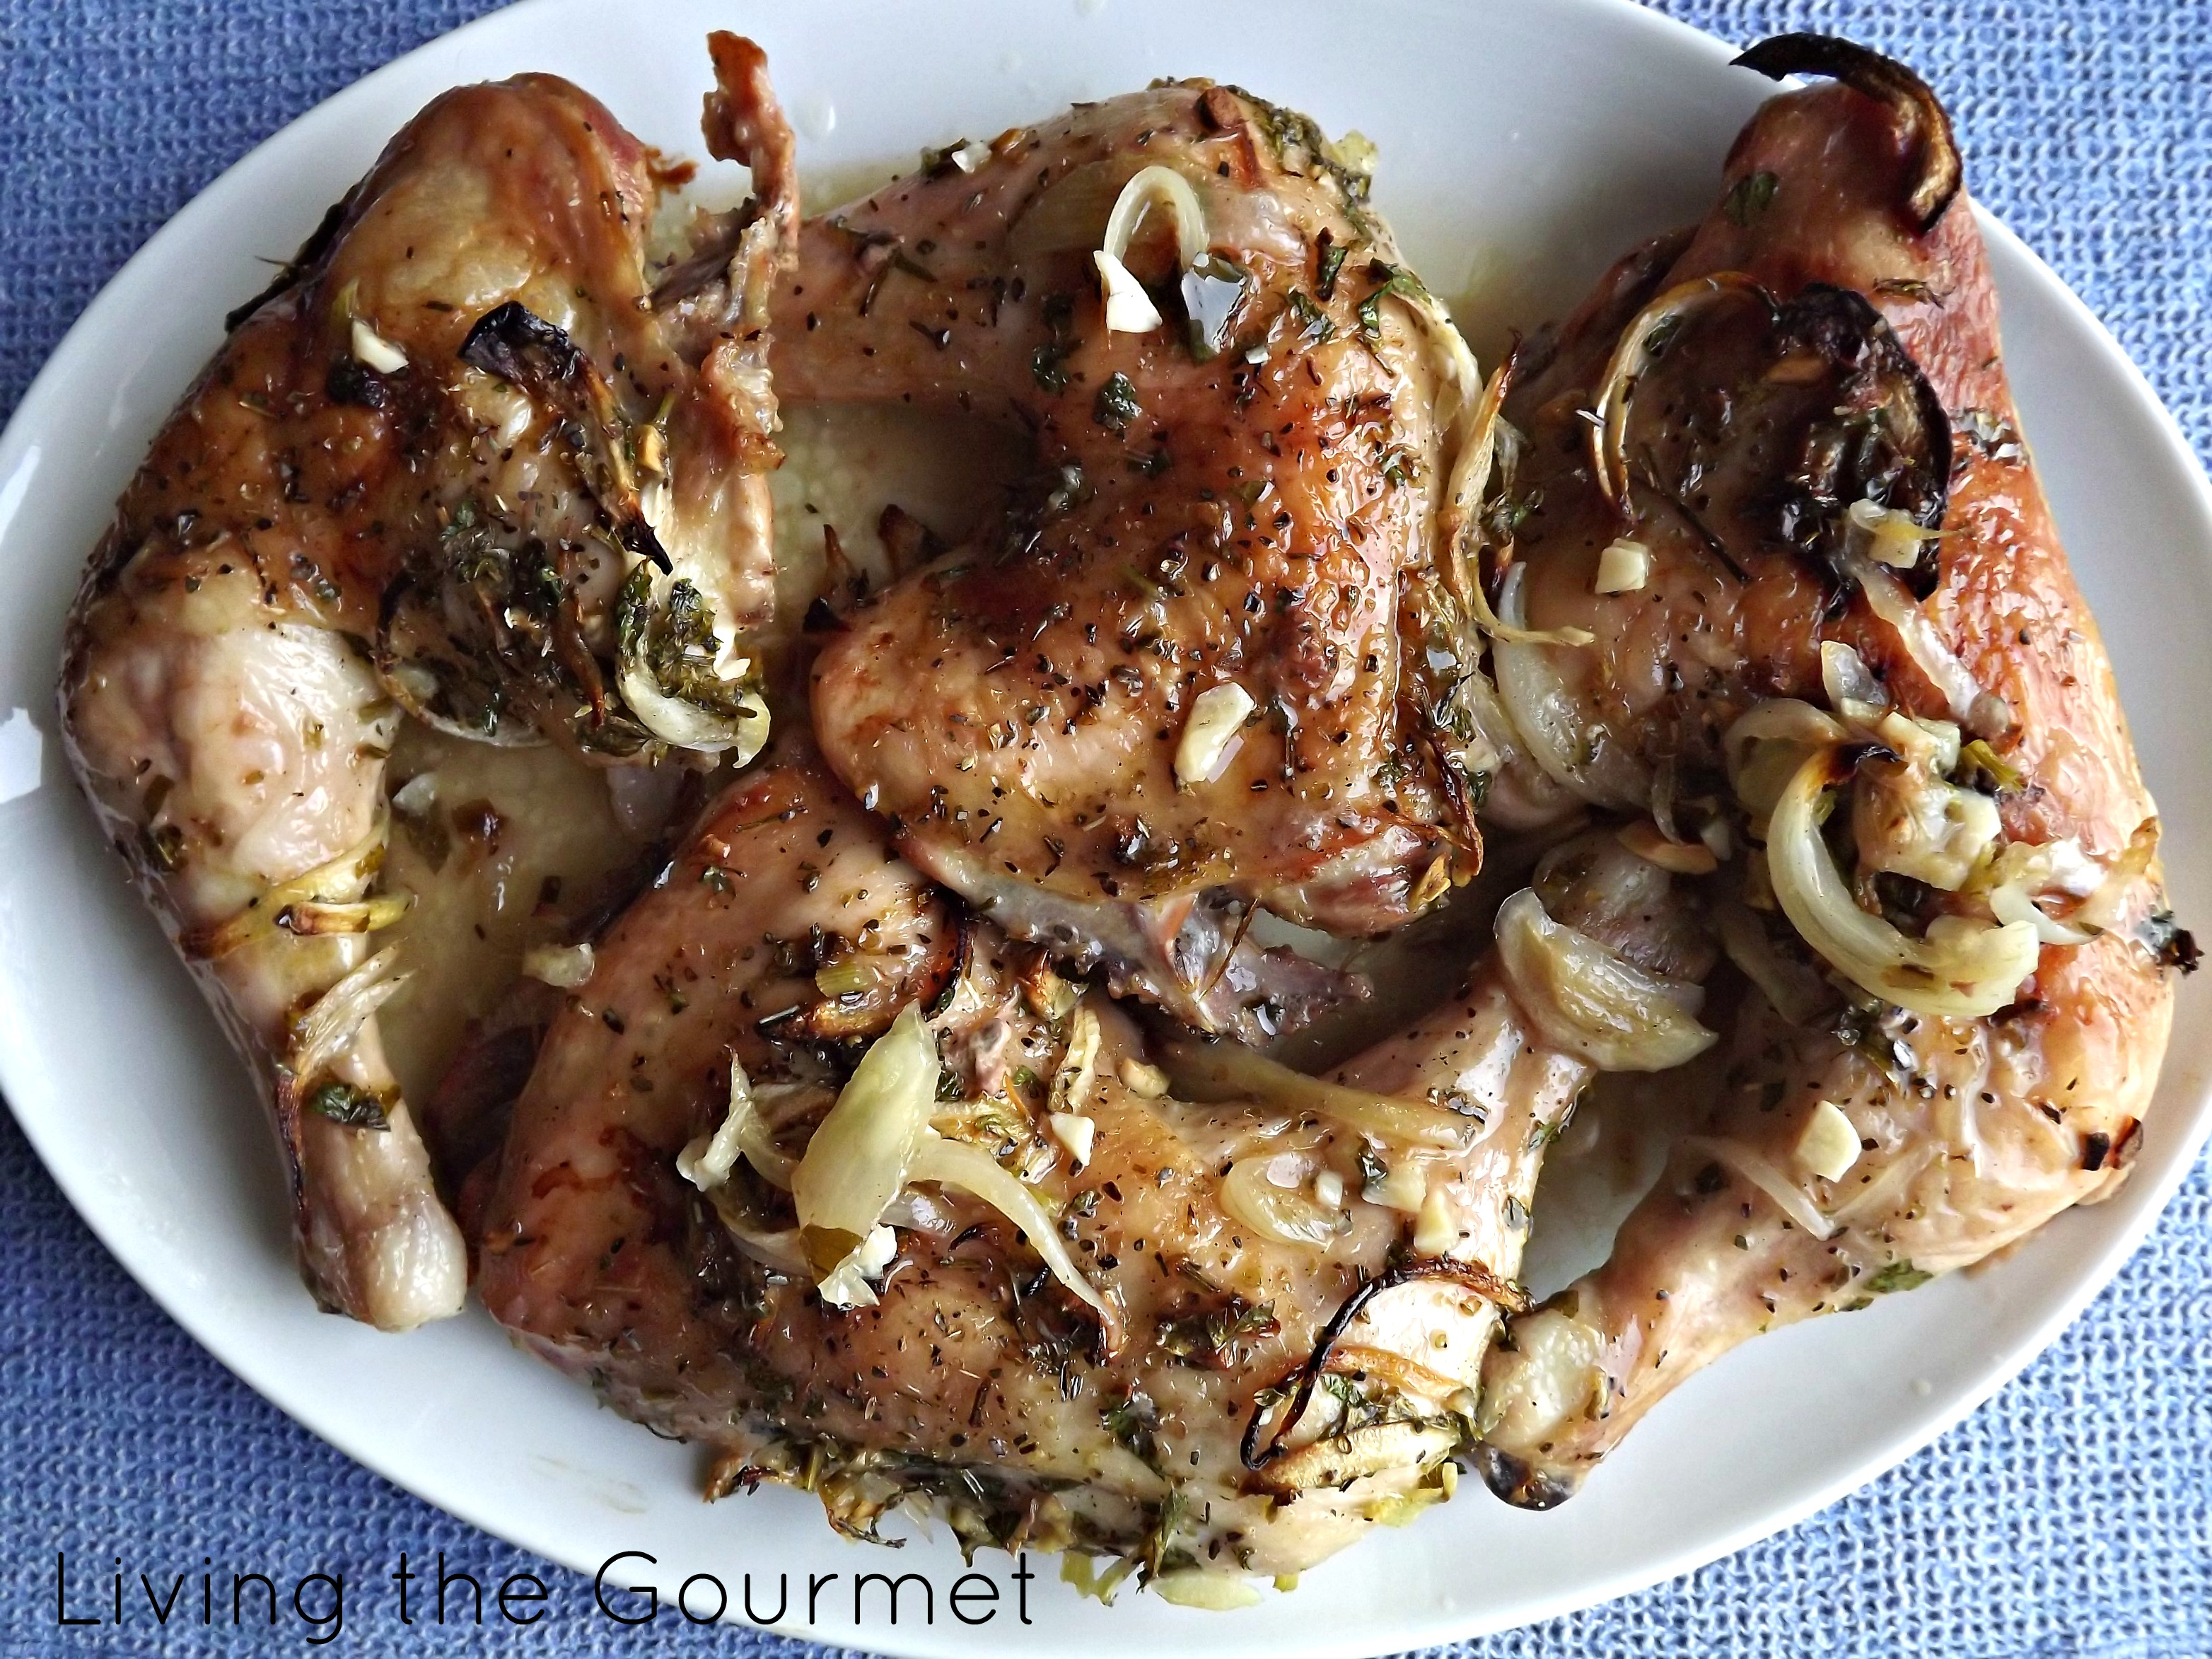 ... Tips, and Food News | Baked Chicken with Citrus and Garlic Marinade